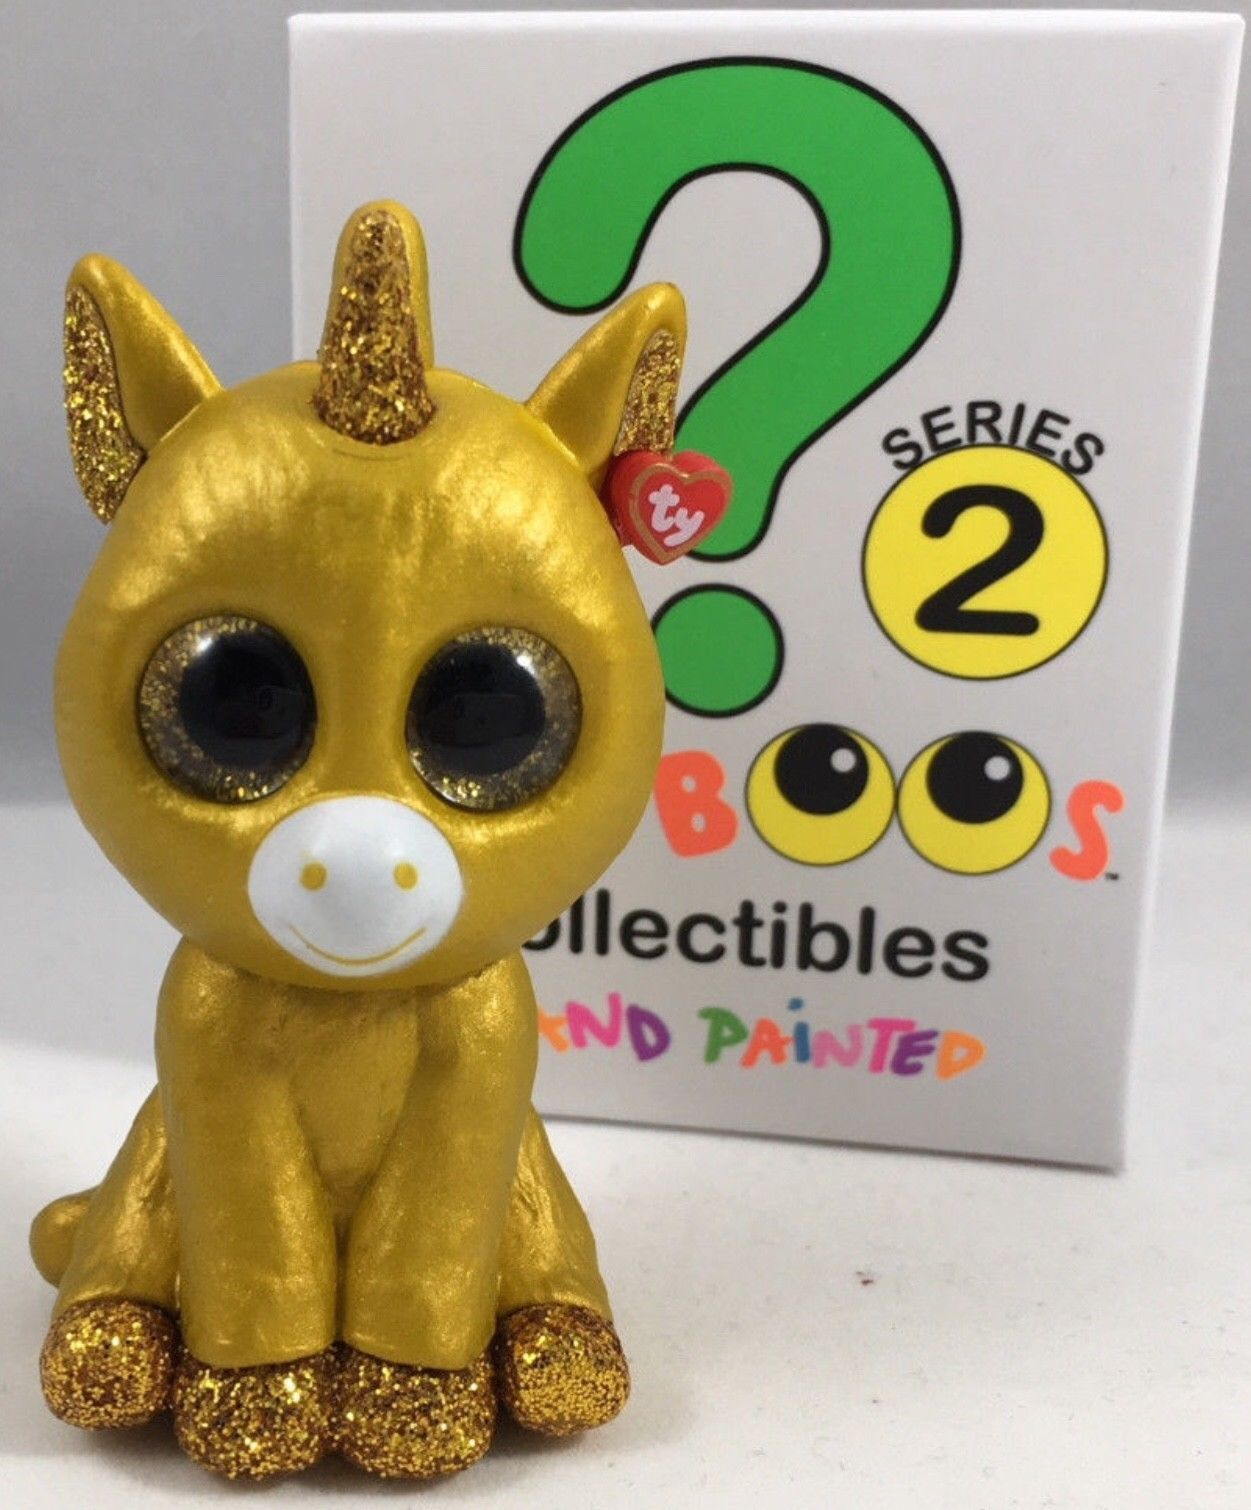 Other Ty Beanbag Plush 1037  Ty Warner Mini Boos Series 2 Chaser ( Gold  Unicorn Chaser ) New -  BUY IT NOW ONLY   40 on  eBay  other  beanbag   plush  warner ... 3cc39939cfc3